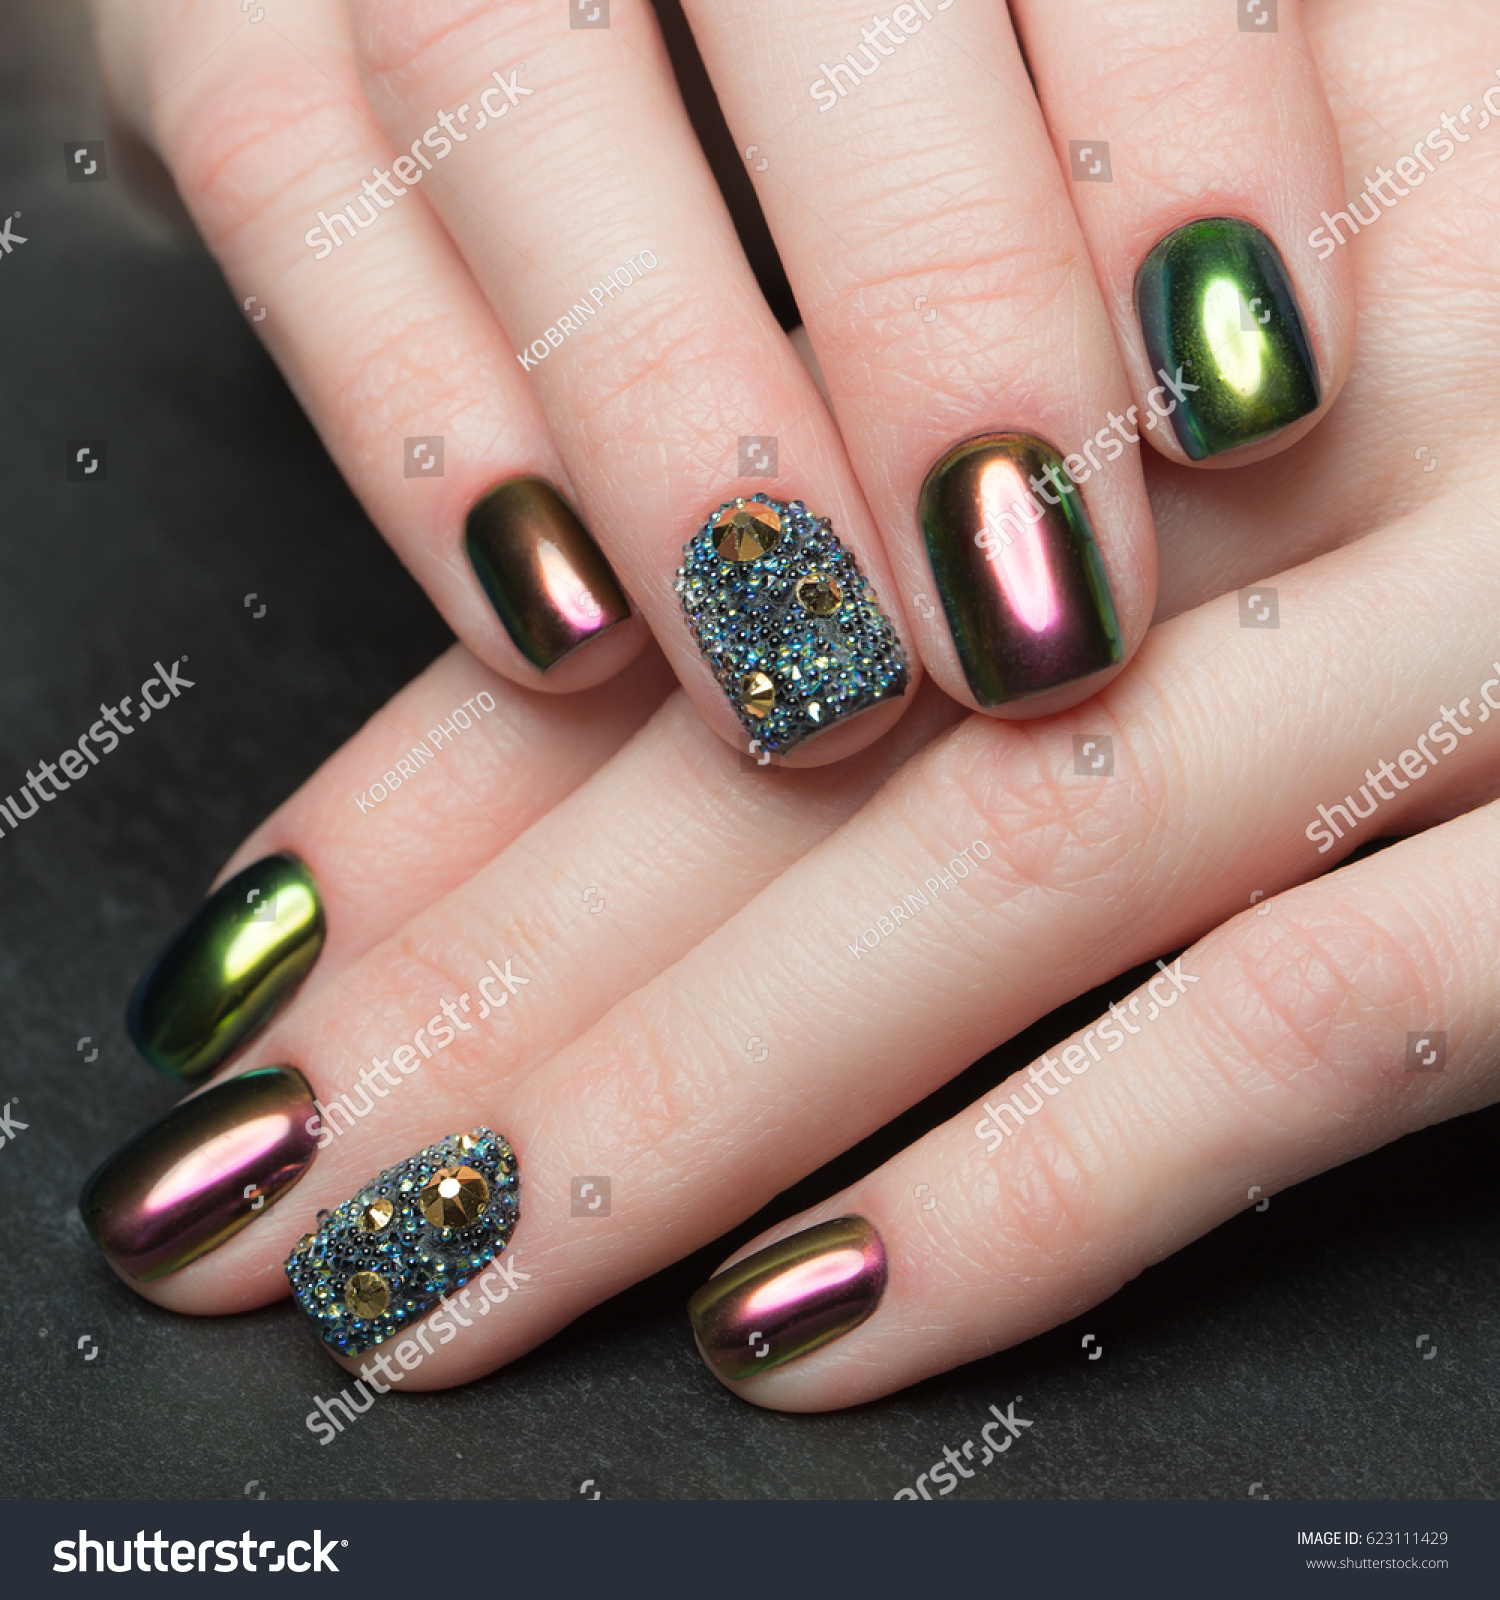 Beautifil colorful manicure rhinestone nail design stock photo beautifil colorful manicure with rhinestone nail design close up prinsesfo Image collections